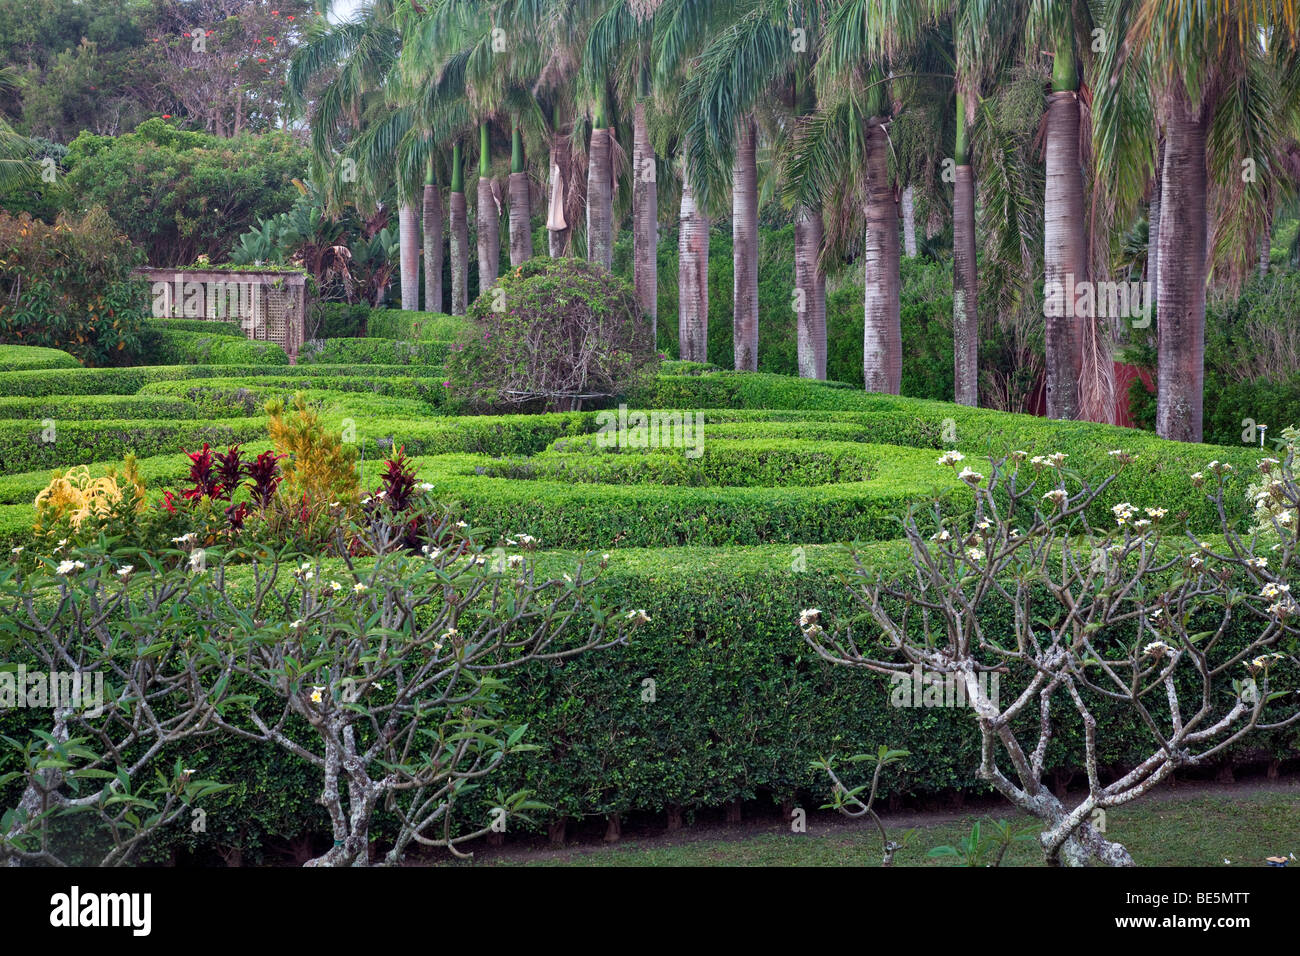 Na Aina Kai Botanical Gardens Kauai Hawaii Stock Photo Royalty Free Image 25941688 Alamy